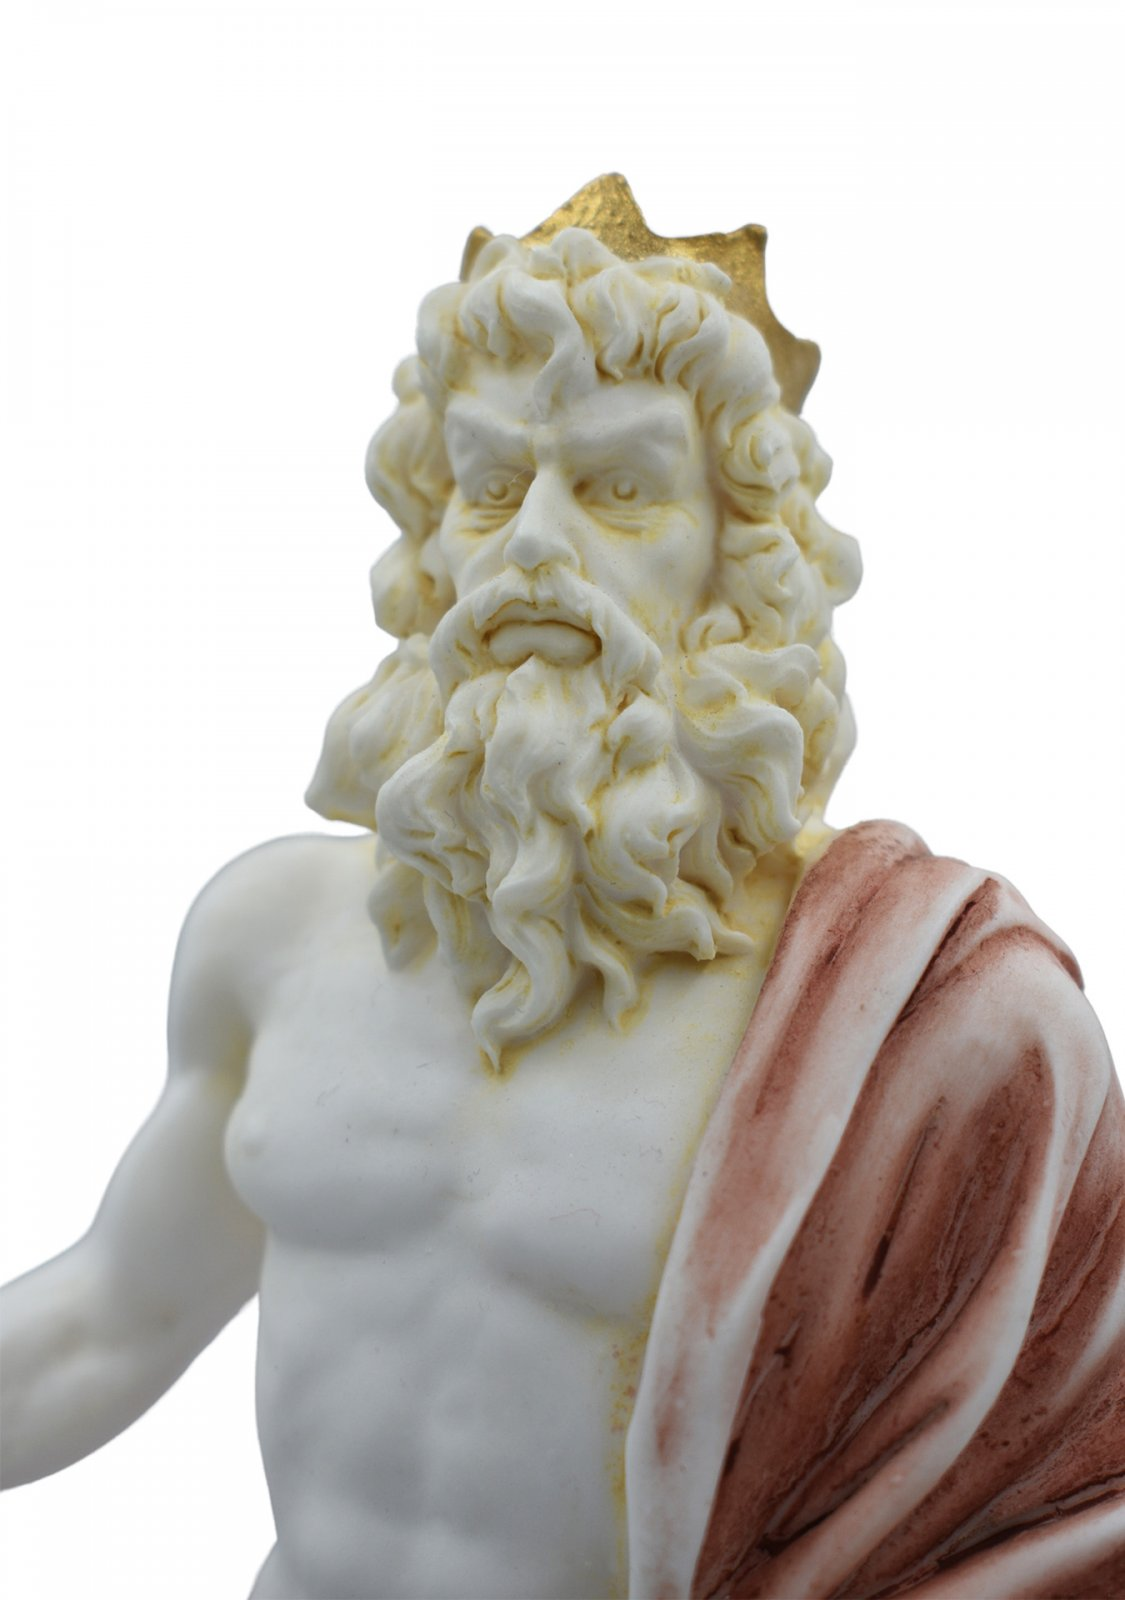 Hades, Pluto, God of the dead and the king of the underworld, greek alabaster statue with color